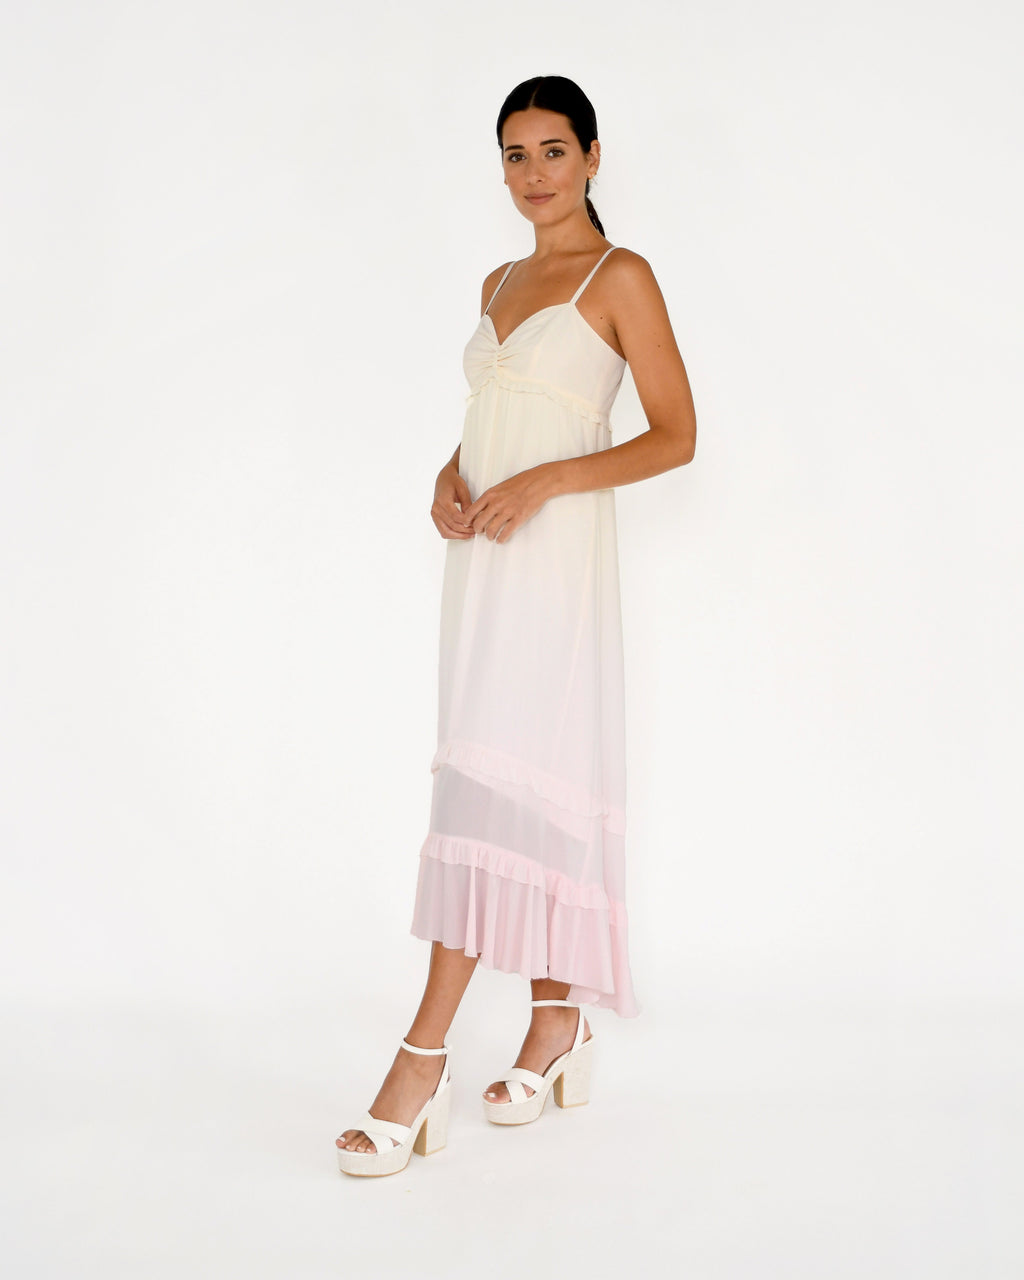 CD18965 - SORBET DIP DYE MAXI DRESS - dresses - midi - Our stunning sorbet maxi dress is hand dyed in a pink and yellow ombr�. Featuring adjustable straps, ruffle detailing and a feminine bodice. Add 1 line break Stylist Tip: Style with wedges or sandals.